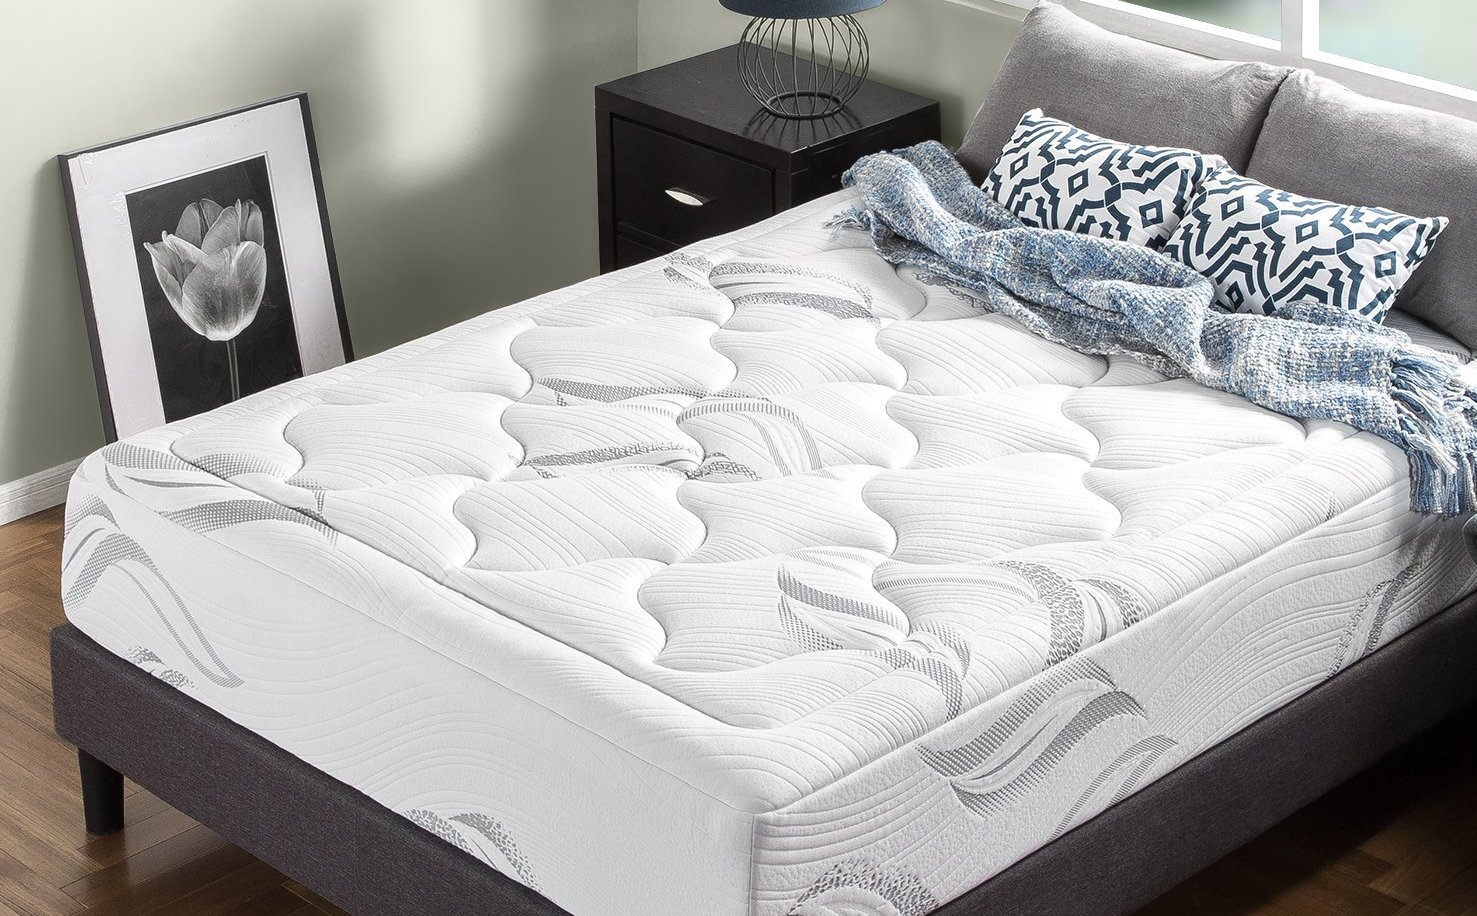 Are Memory Foam Mattresses Any Good?